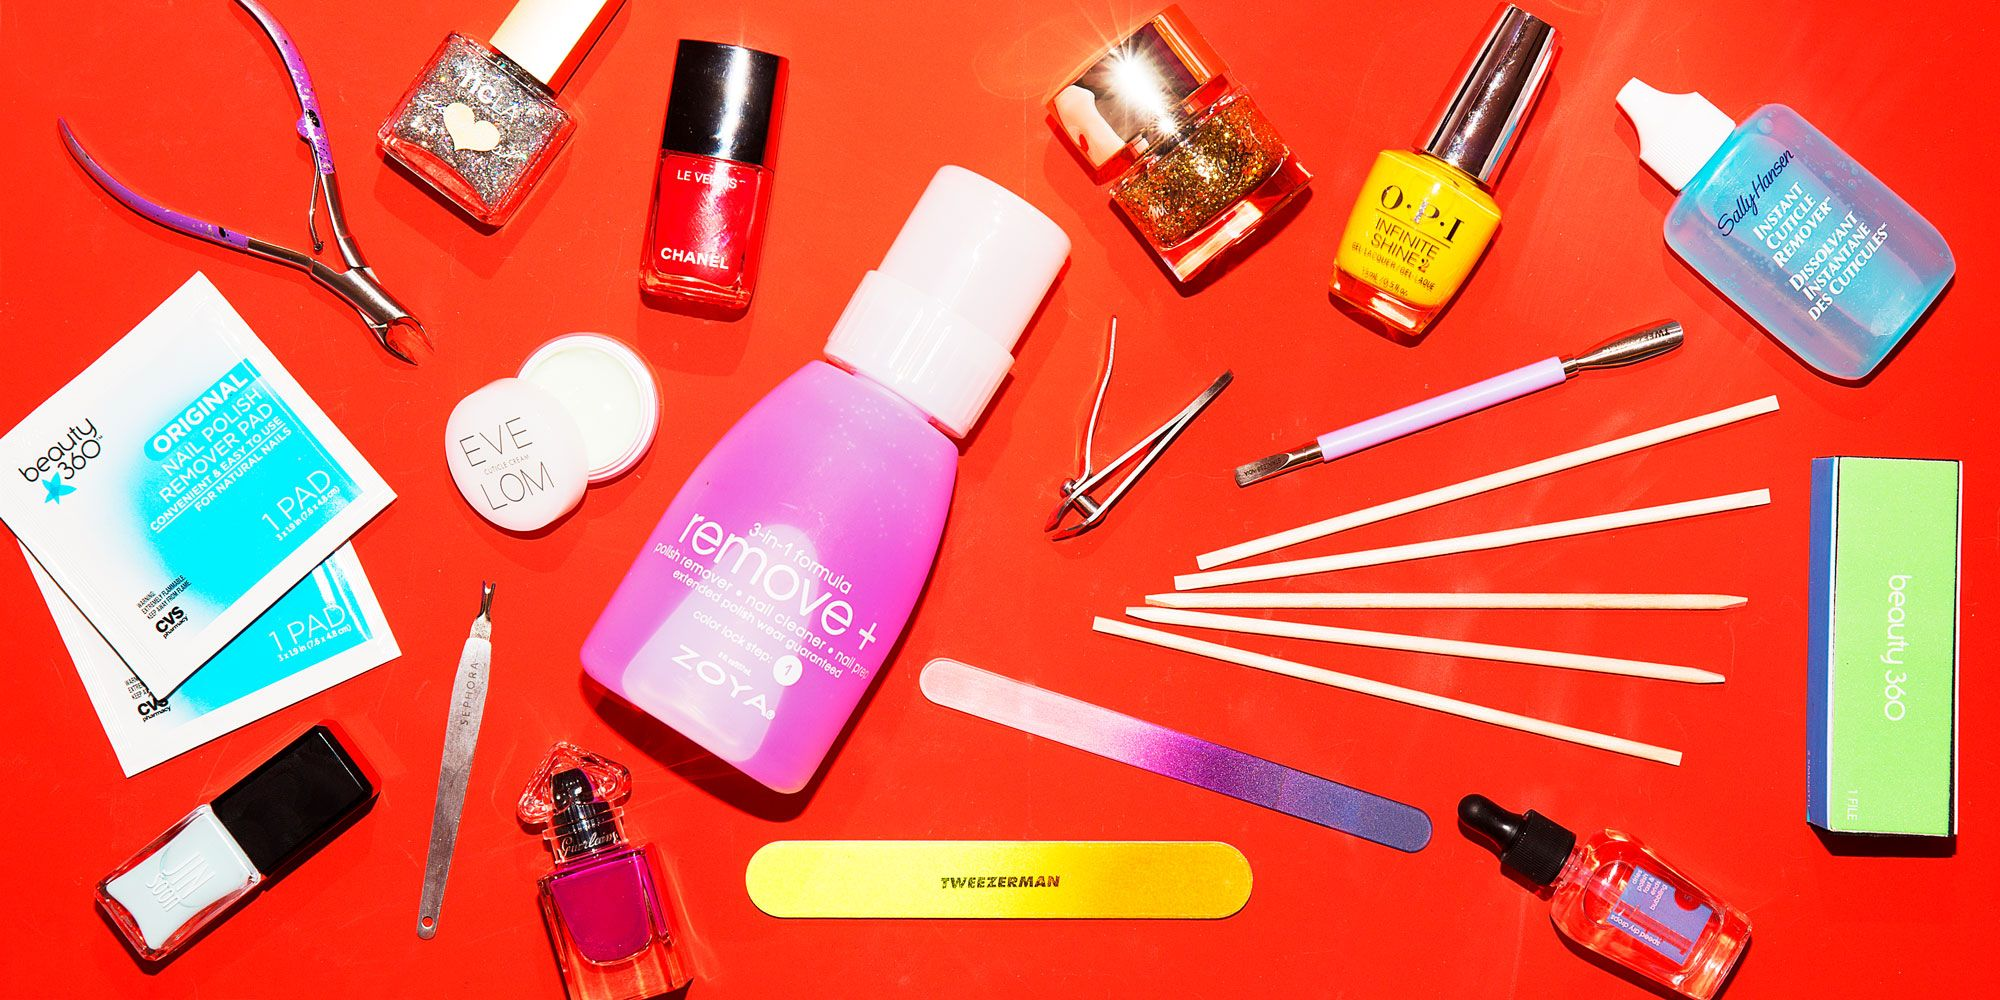 12 Nail Care Tips You Need To See How To Care For Your Nails